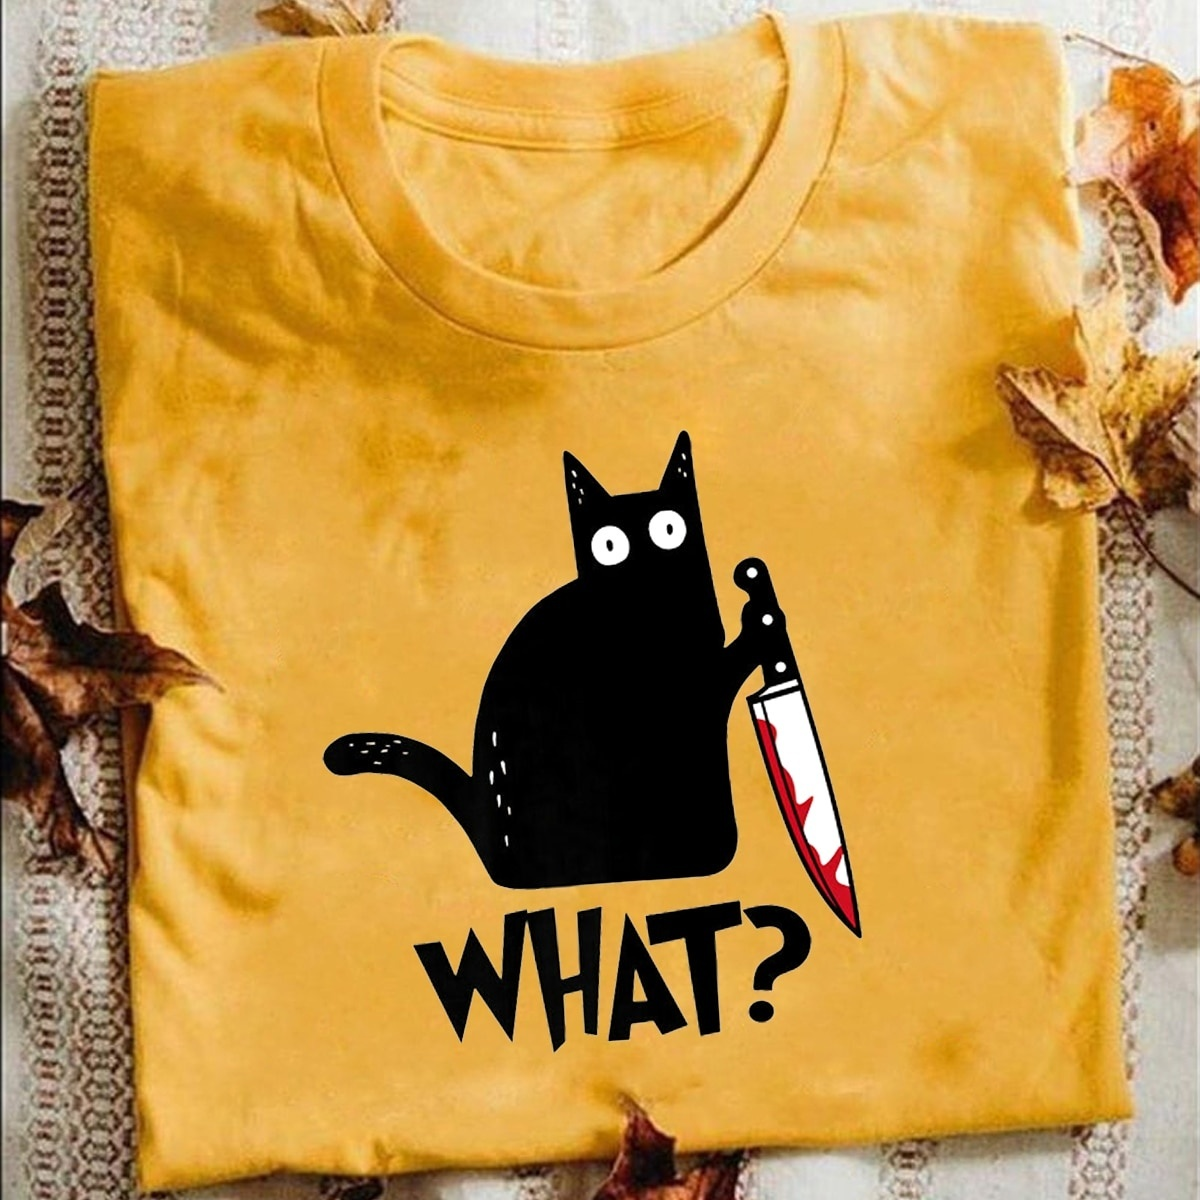 VIP HJN Cat What T Shirt Murderous Cat With Knife Funny Halloween Gift T Shirt Unisex Cotton T Shirts image